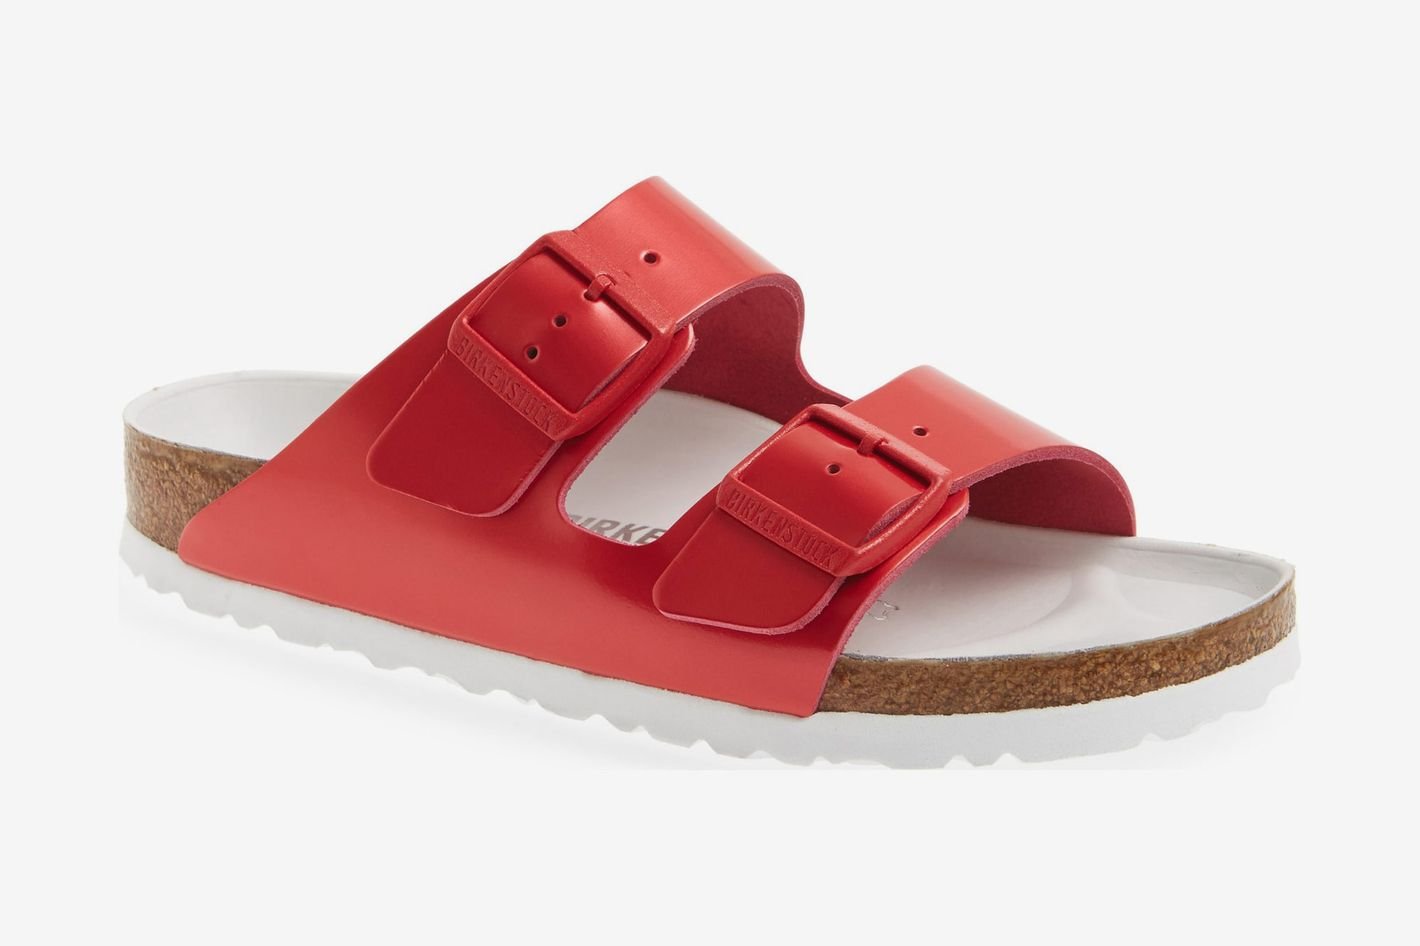 4926c8145223 Birkenstock Arizona Hex Limited Edition Shock Drop Slide Sandal Red  Spectacular Leather